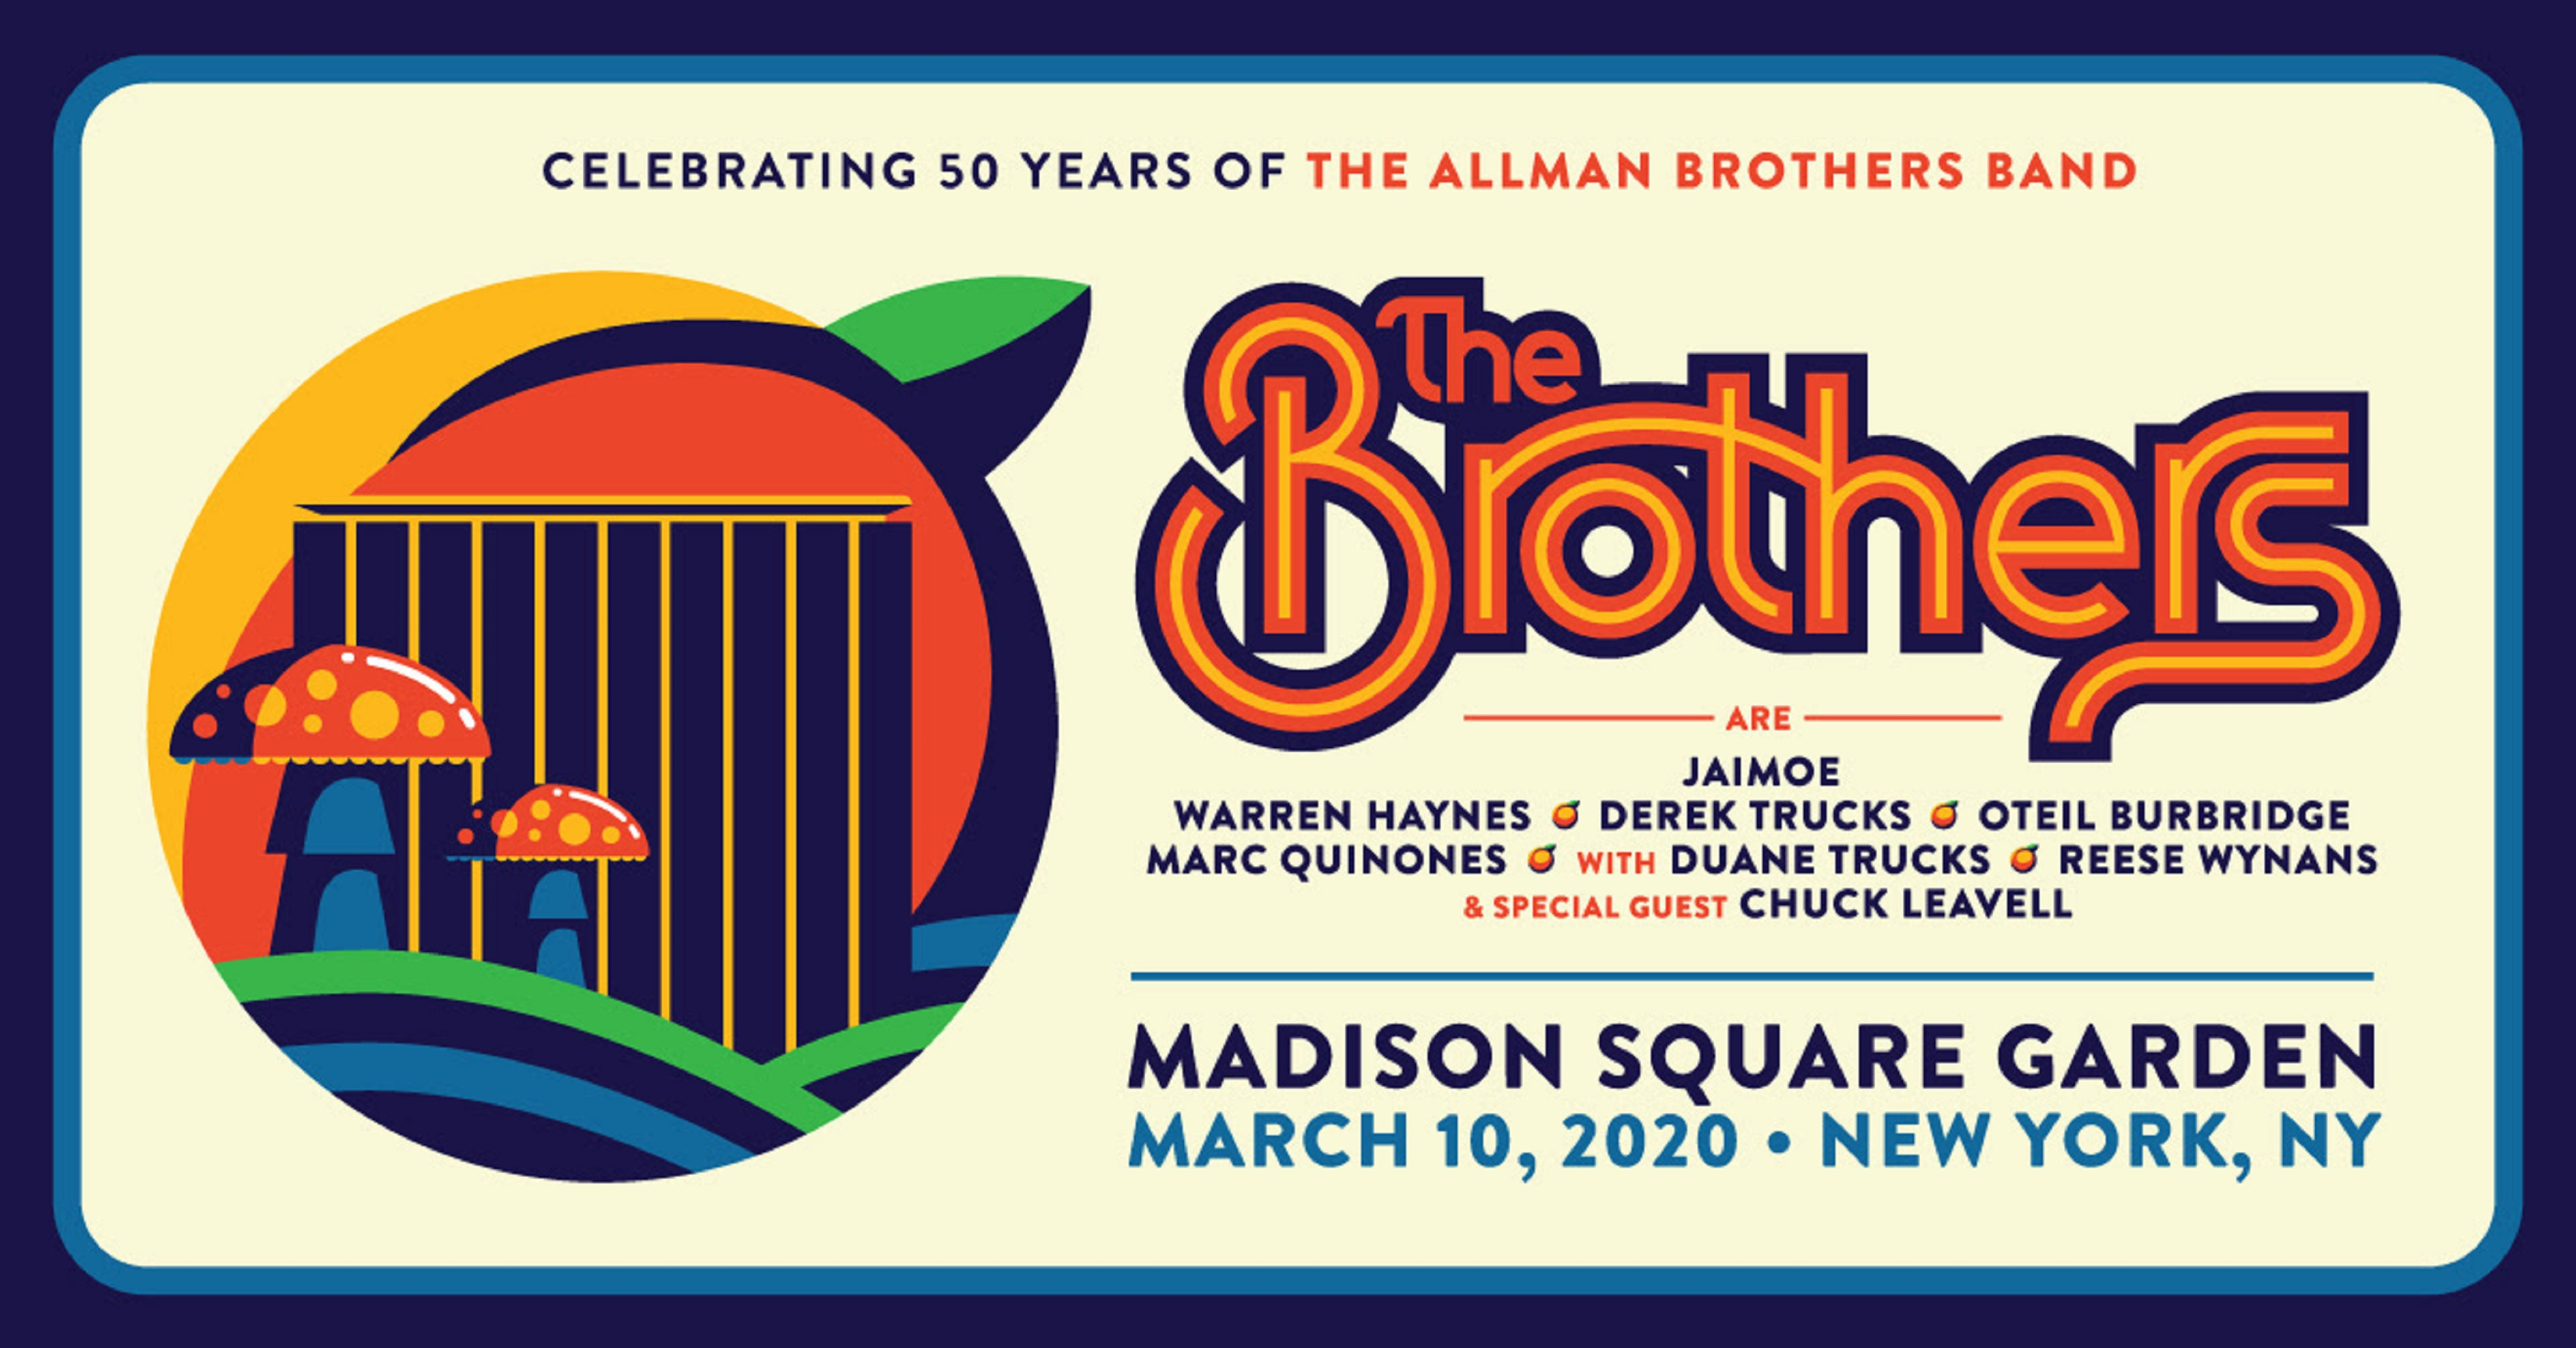 The Brothers at Madison Square Garden March 10, 2020